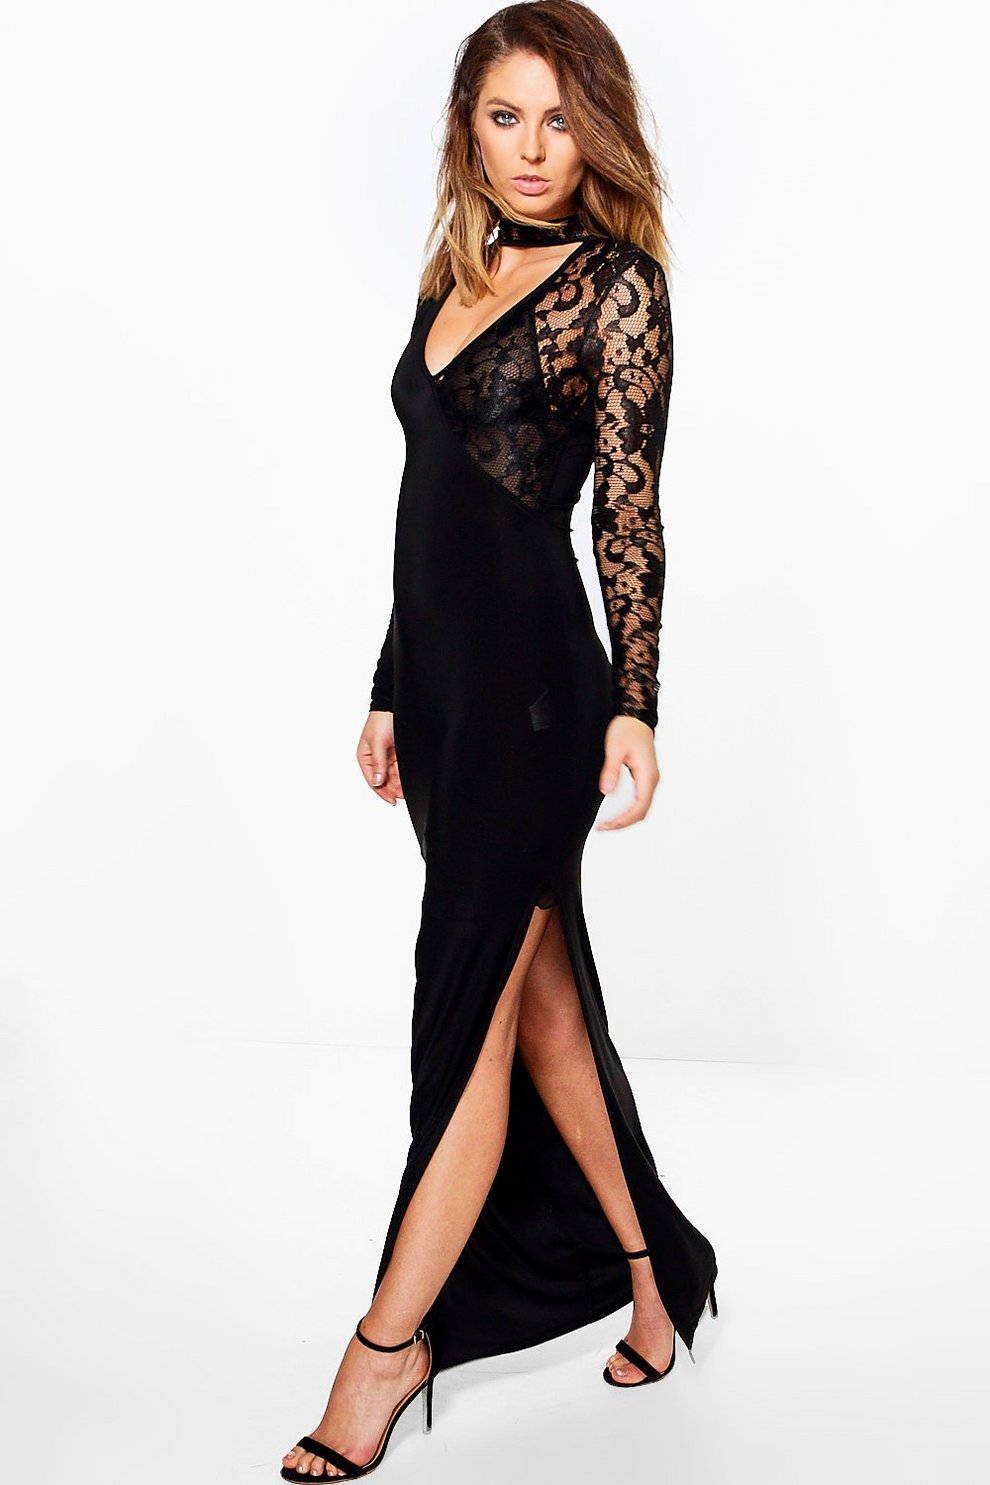 0438f787be1 Womens Black Anouk Lace Insert Choker Slinky Maxi Dress. Hover to zoom